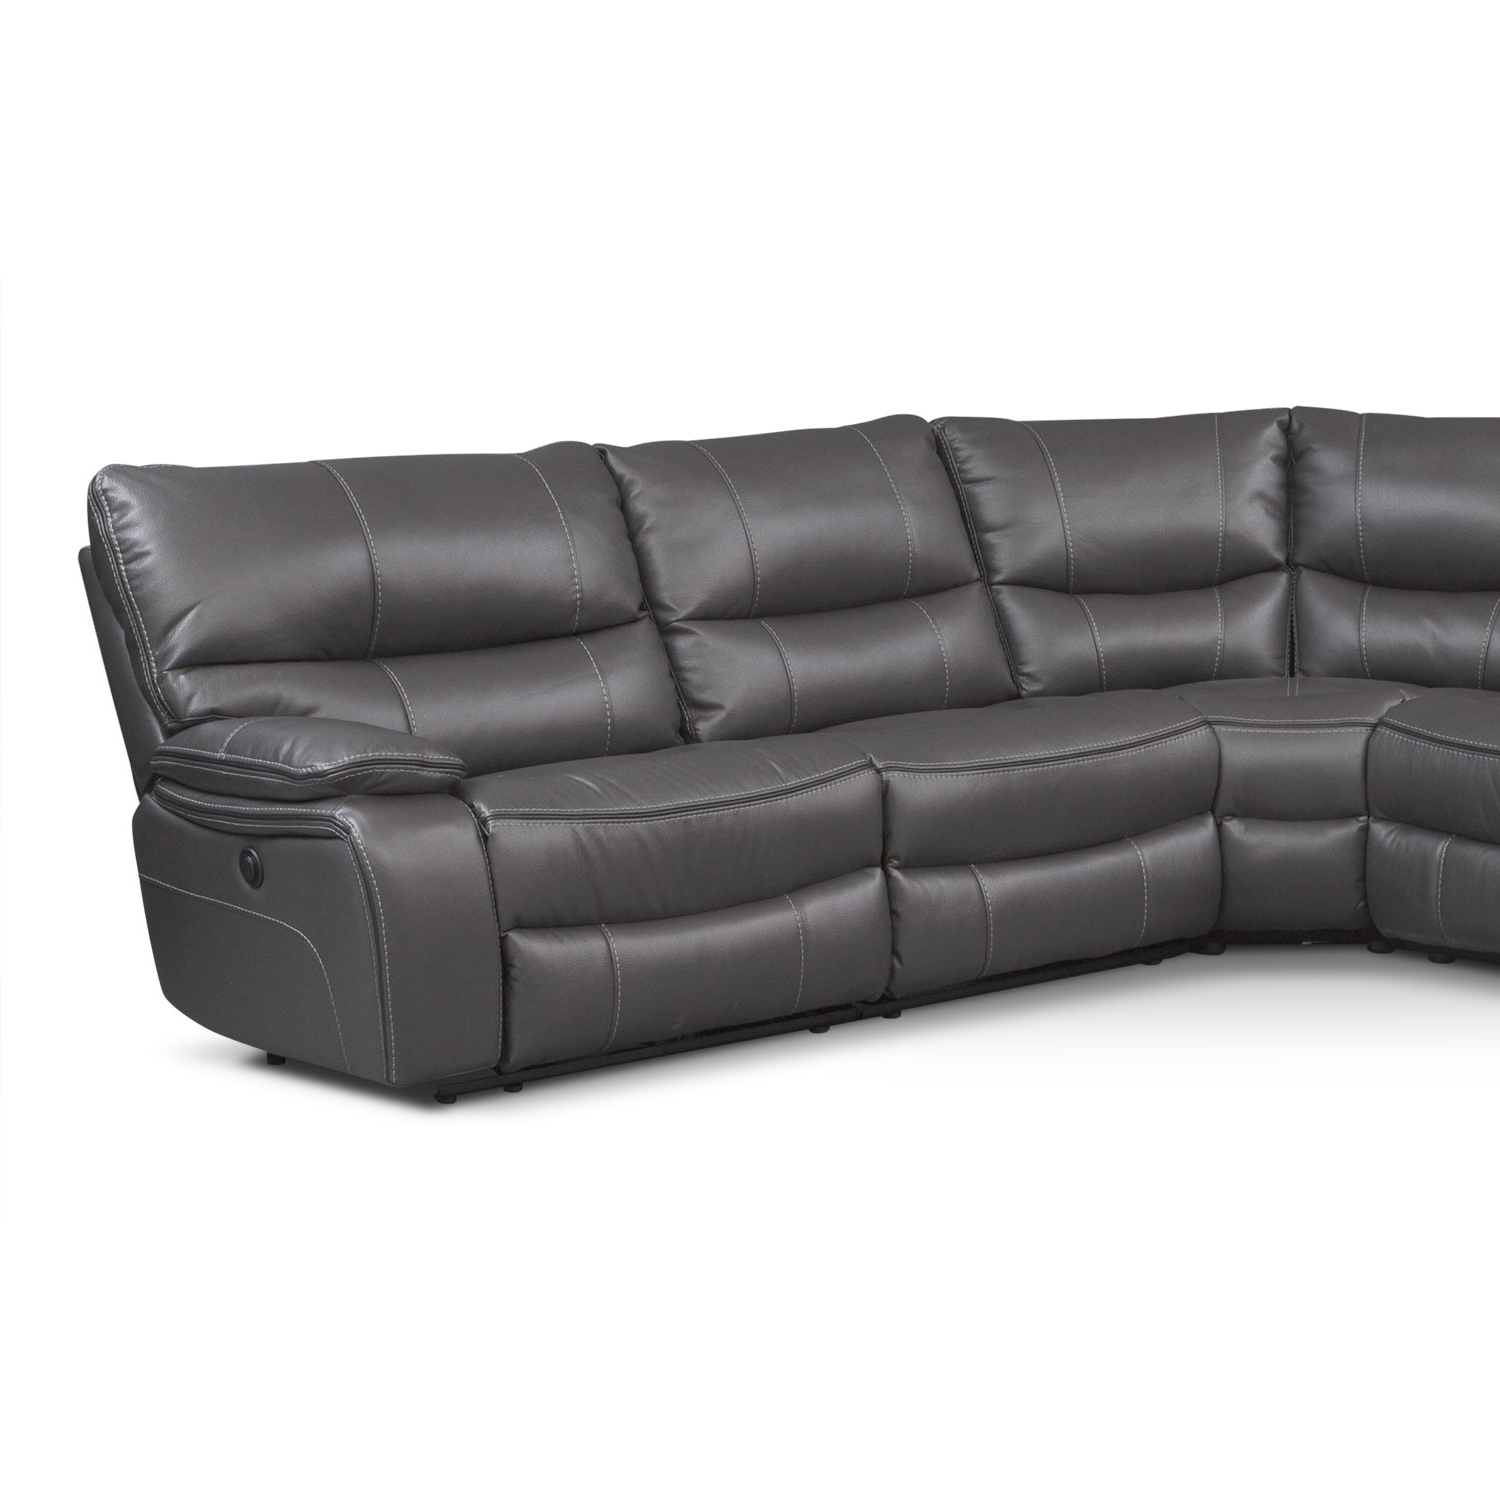 Orlando 6 Piece Power Reclining Sectional With 1 Stationary Chair For Best And Newest Kristen Silver Grey 6 Piece Power Reclining Sectionals (View 4 of 20)